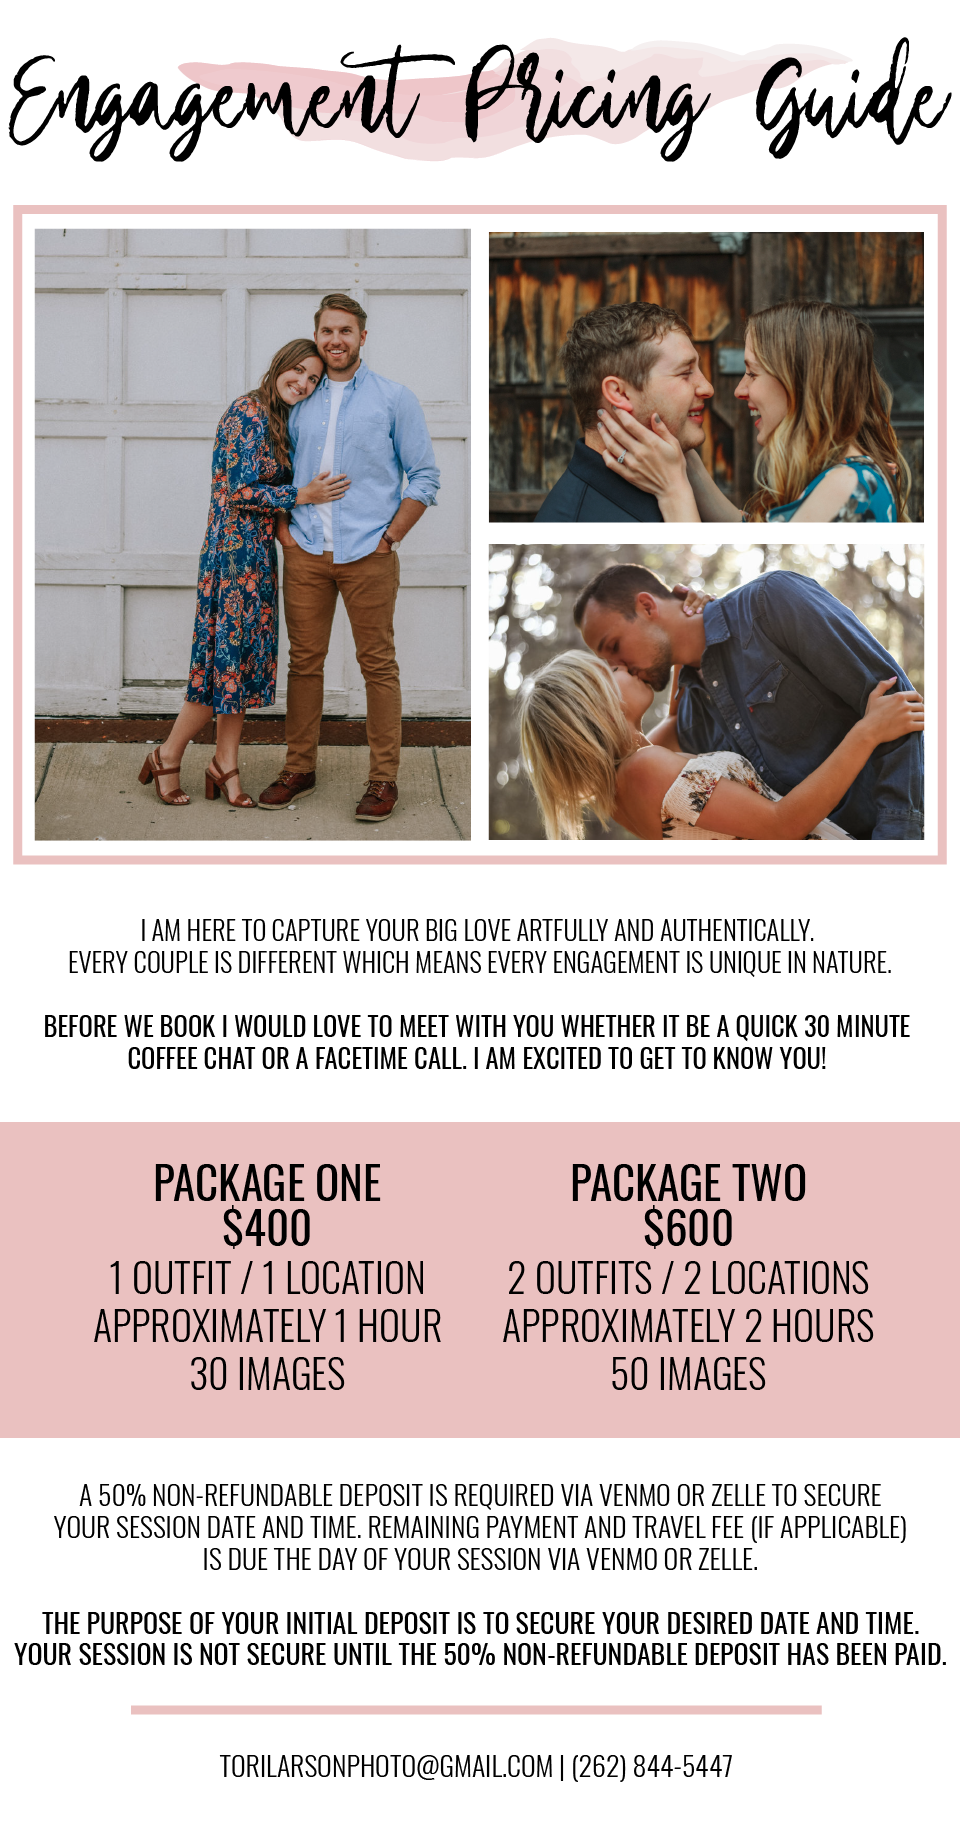 ENGAGMENT-PRICING.png